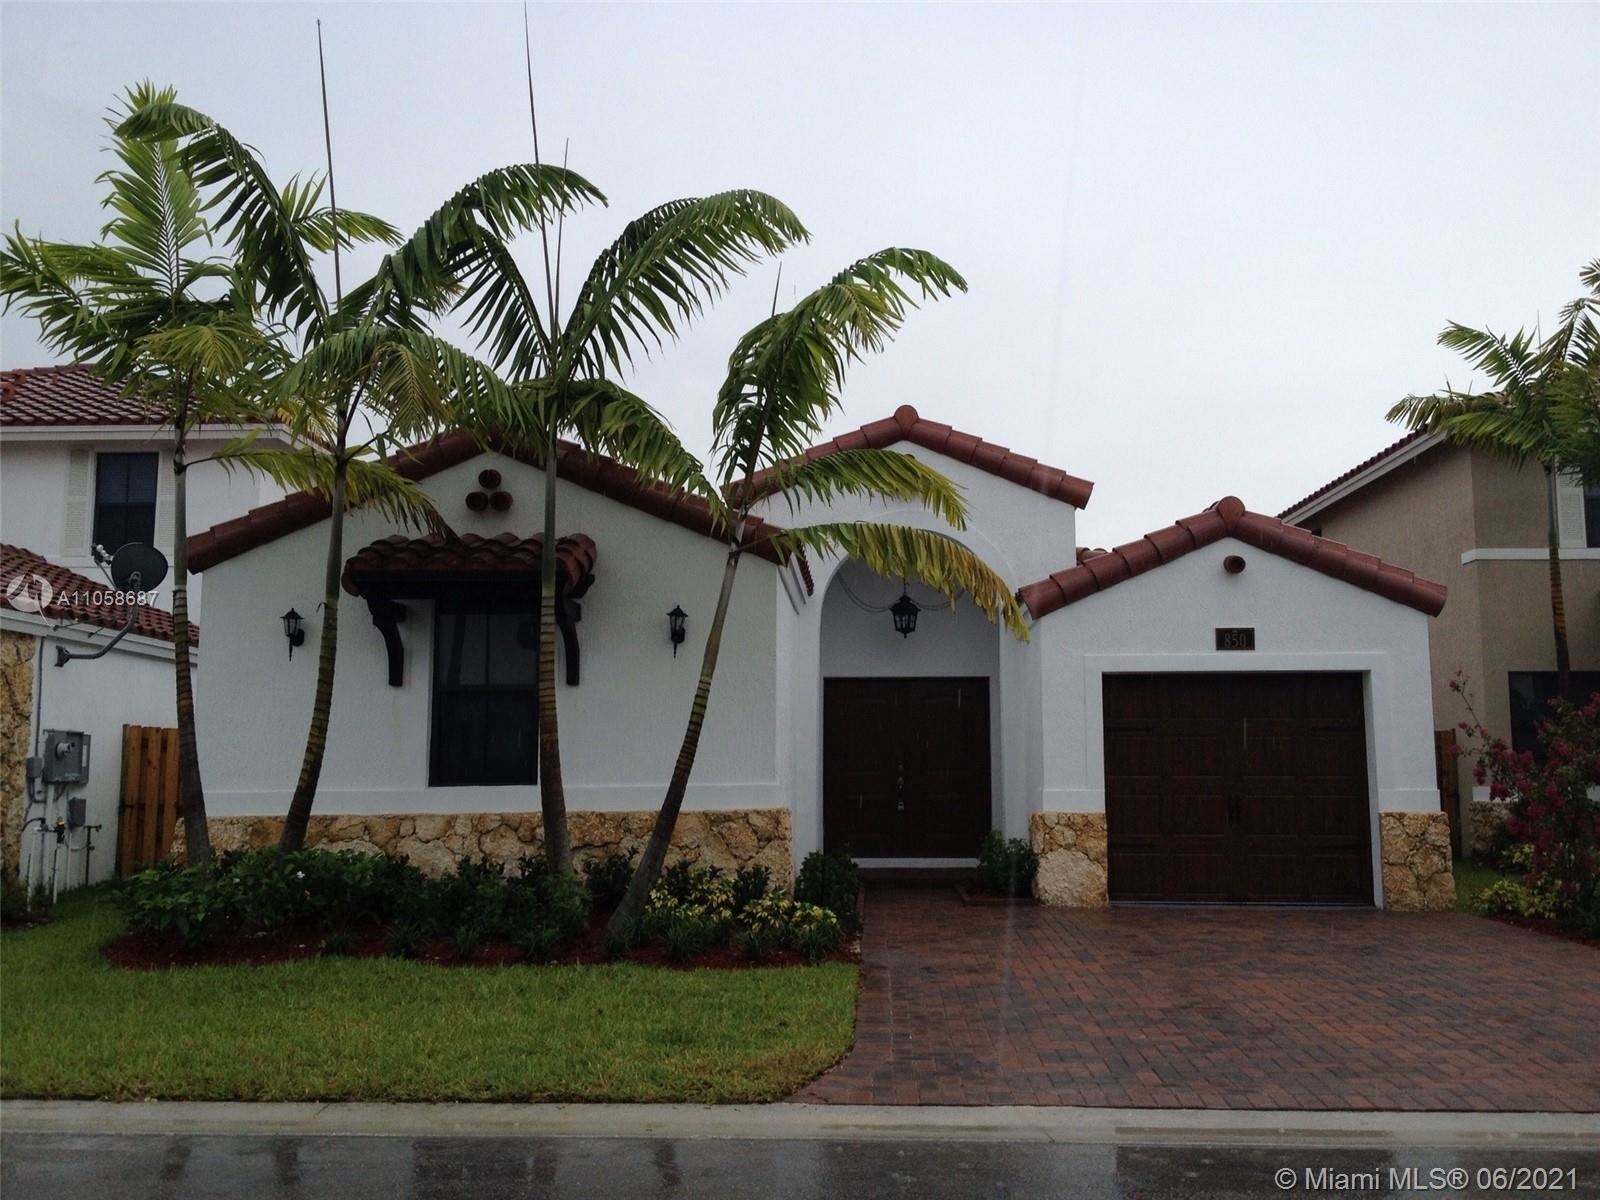 850 NW 99th Ave, Doral, FL 33172 - #: A11058687